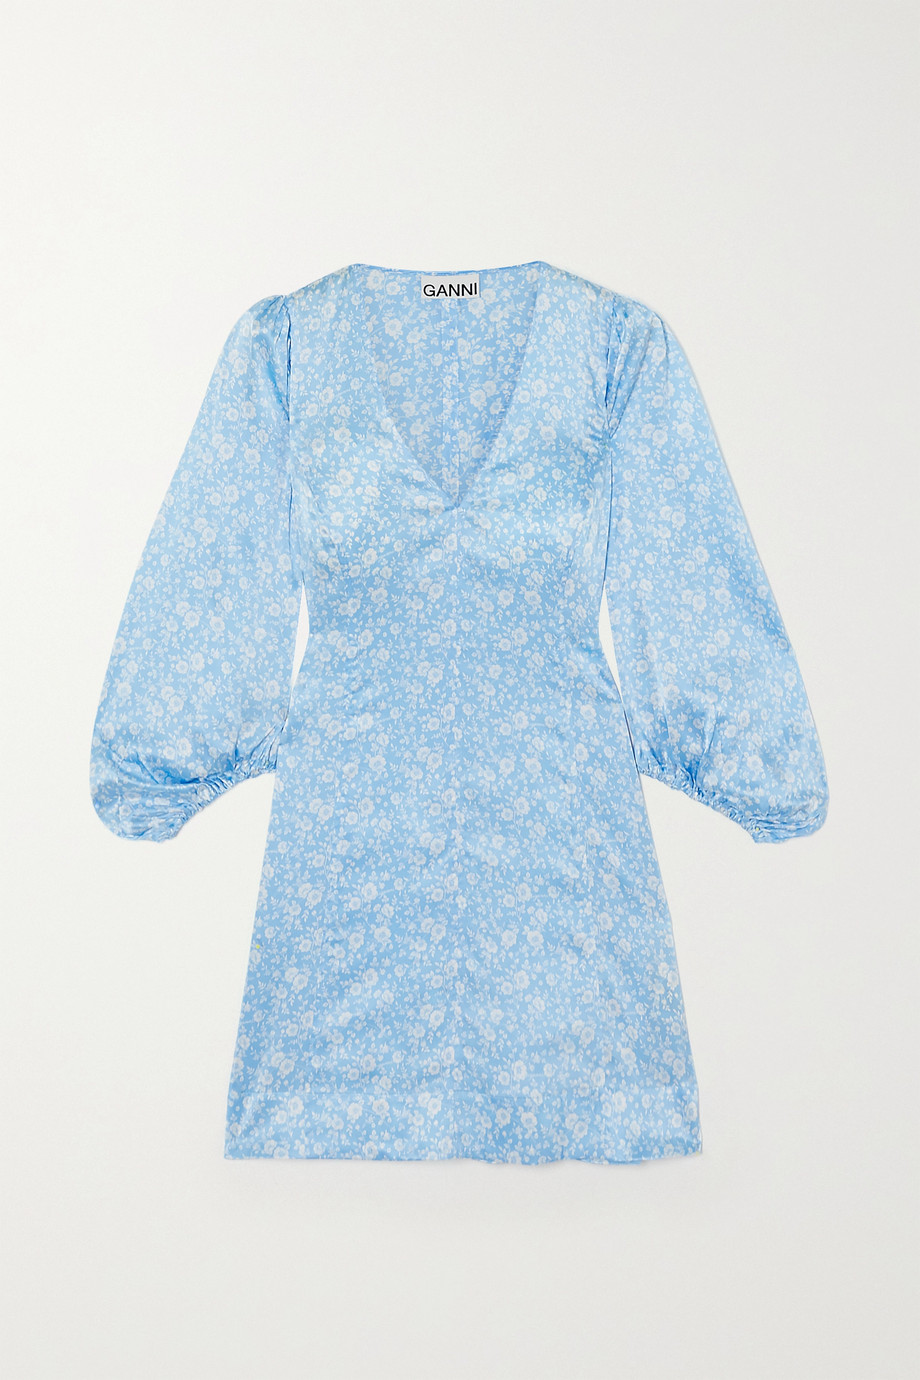 Ganni Floral-print stretch-silk satin mini dress,Blue